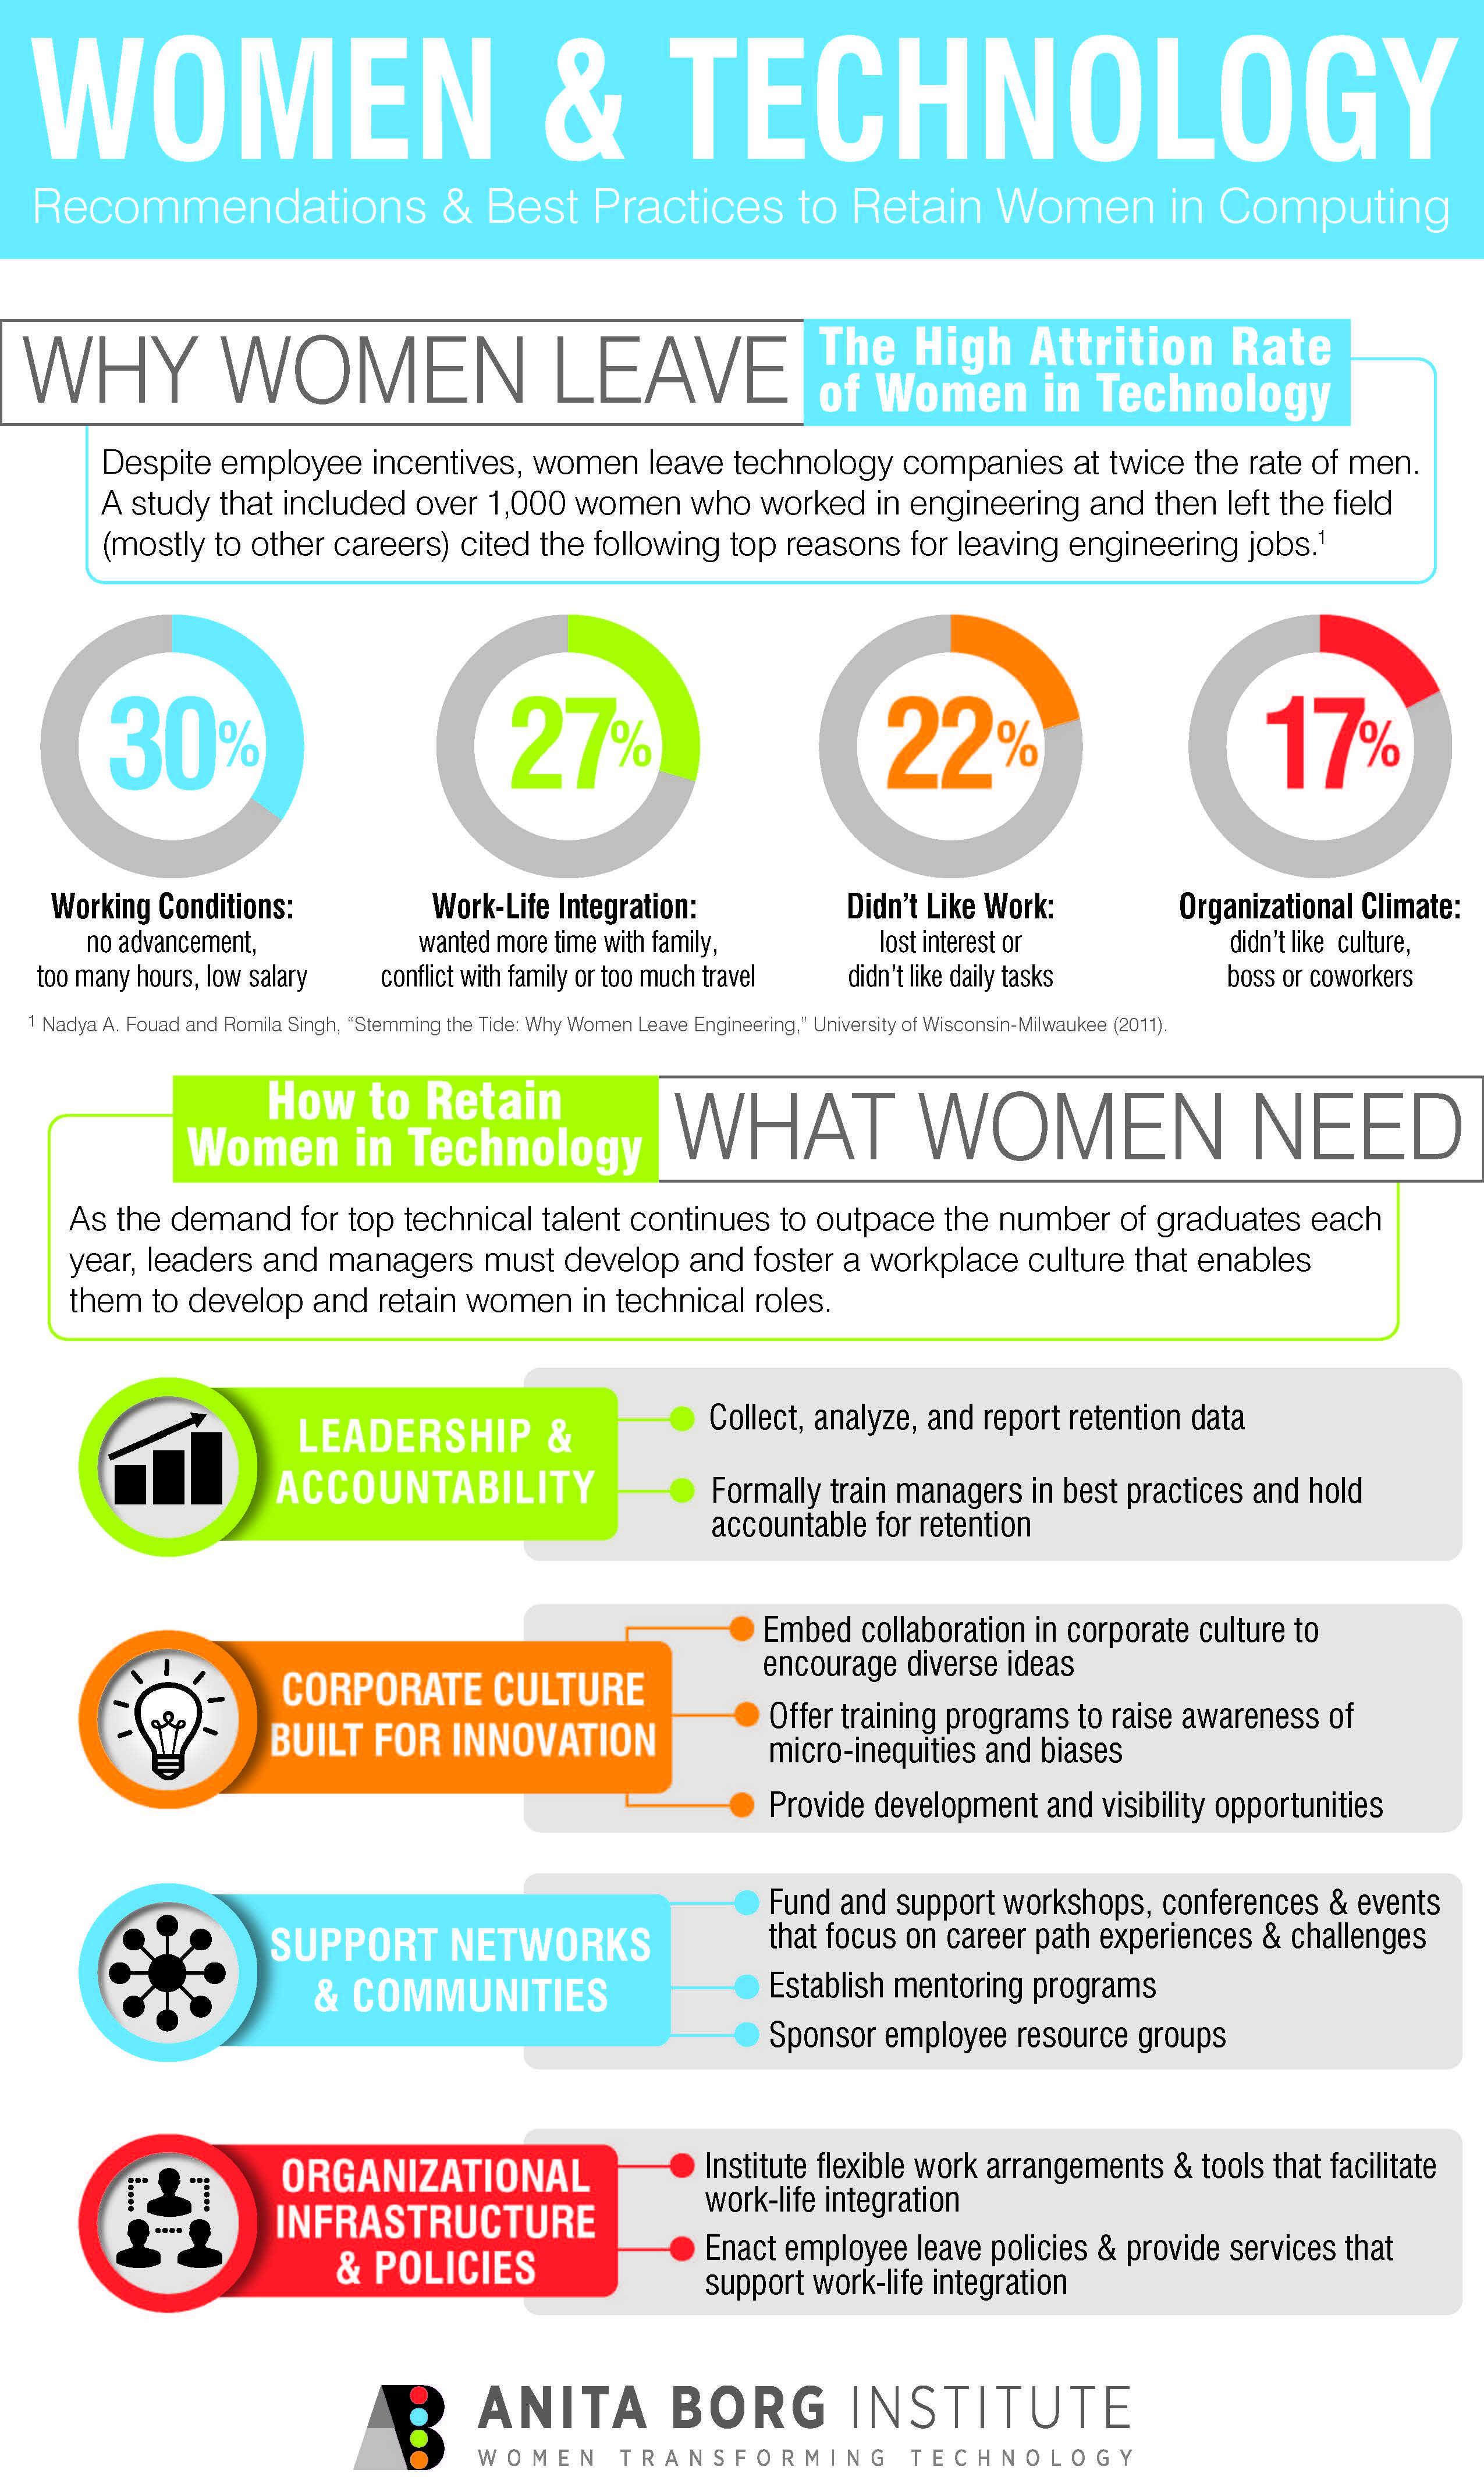 Anita Borg Institute for Women in Technology Infographic used on the friday feminine angle by www.gamificationnation.com